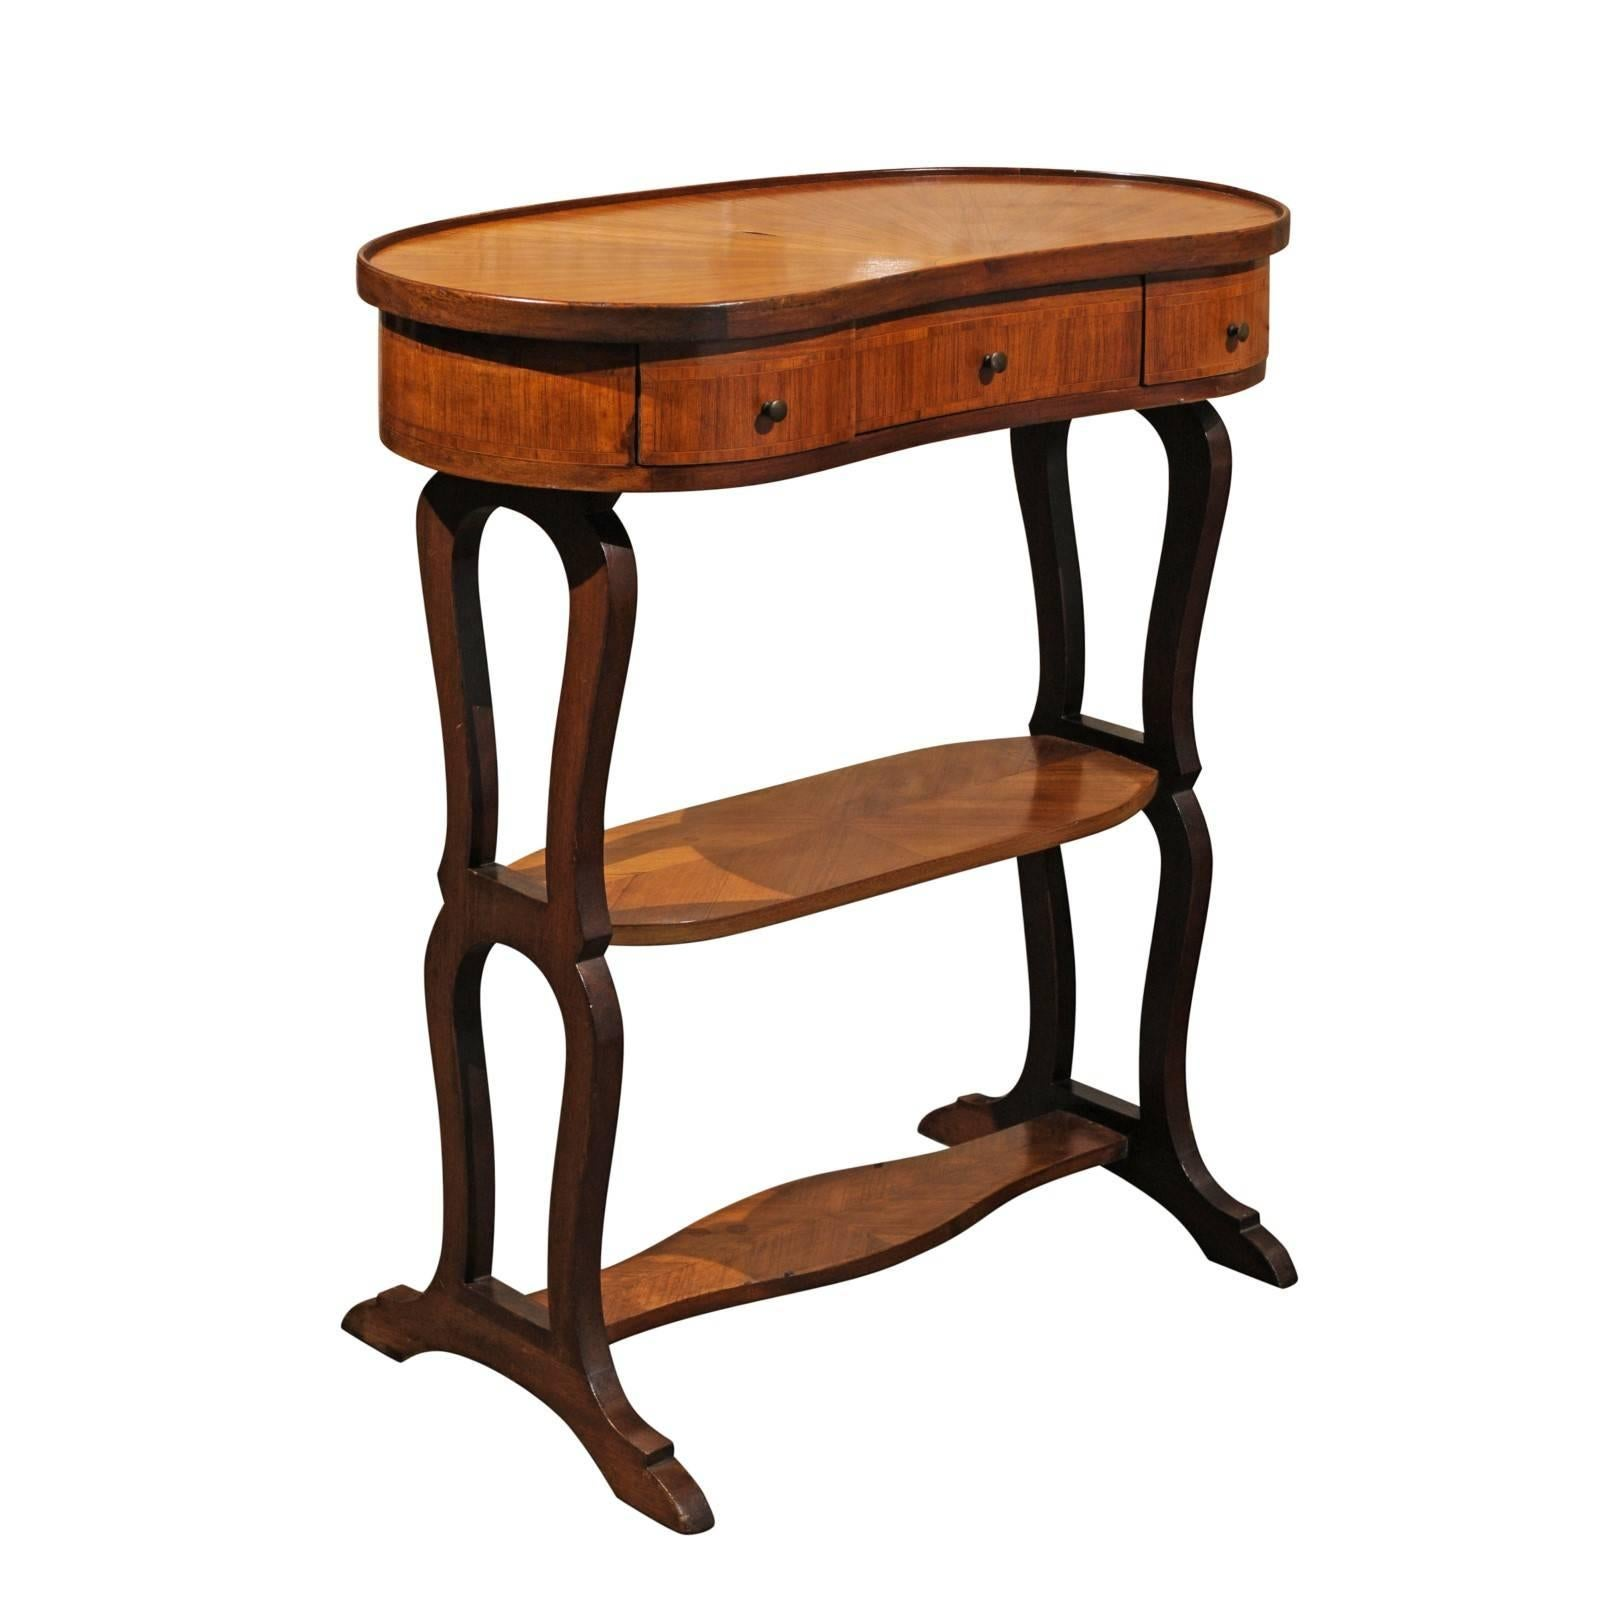 Genial French Inlaid Bean Shaped Tiered Small Side Table From The 1920s For Sale